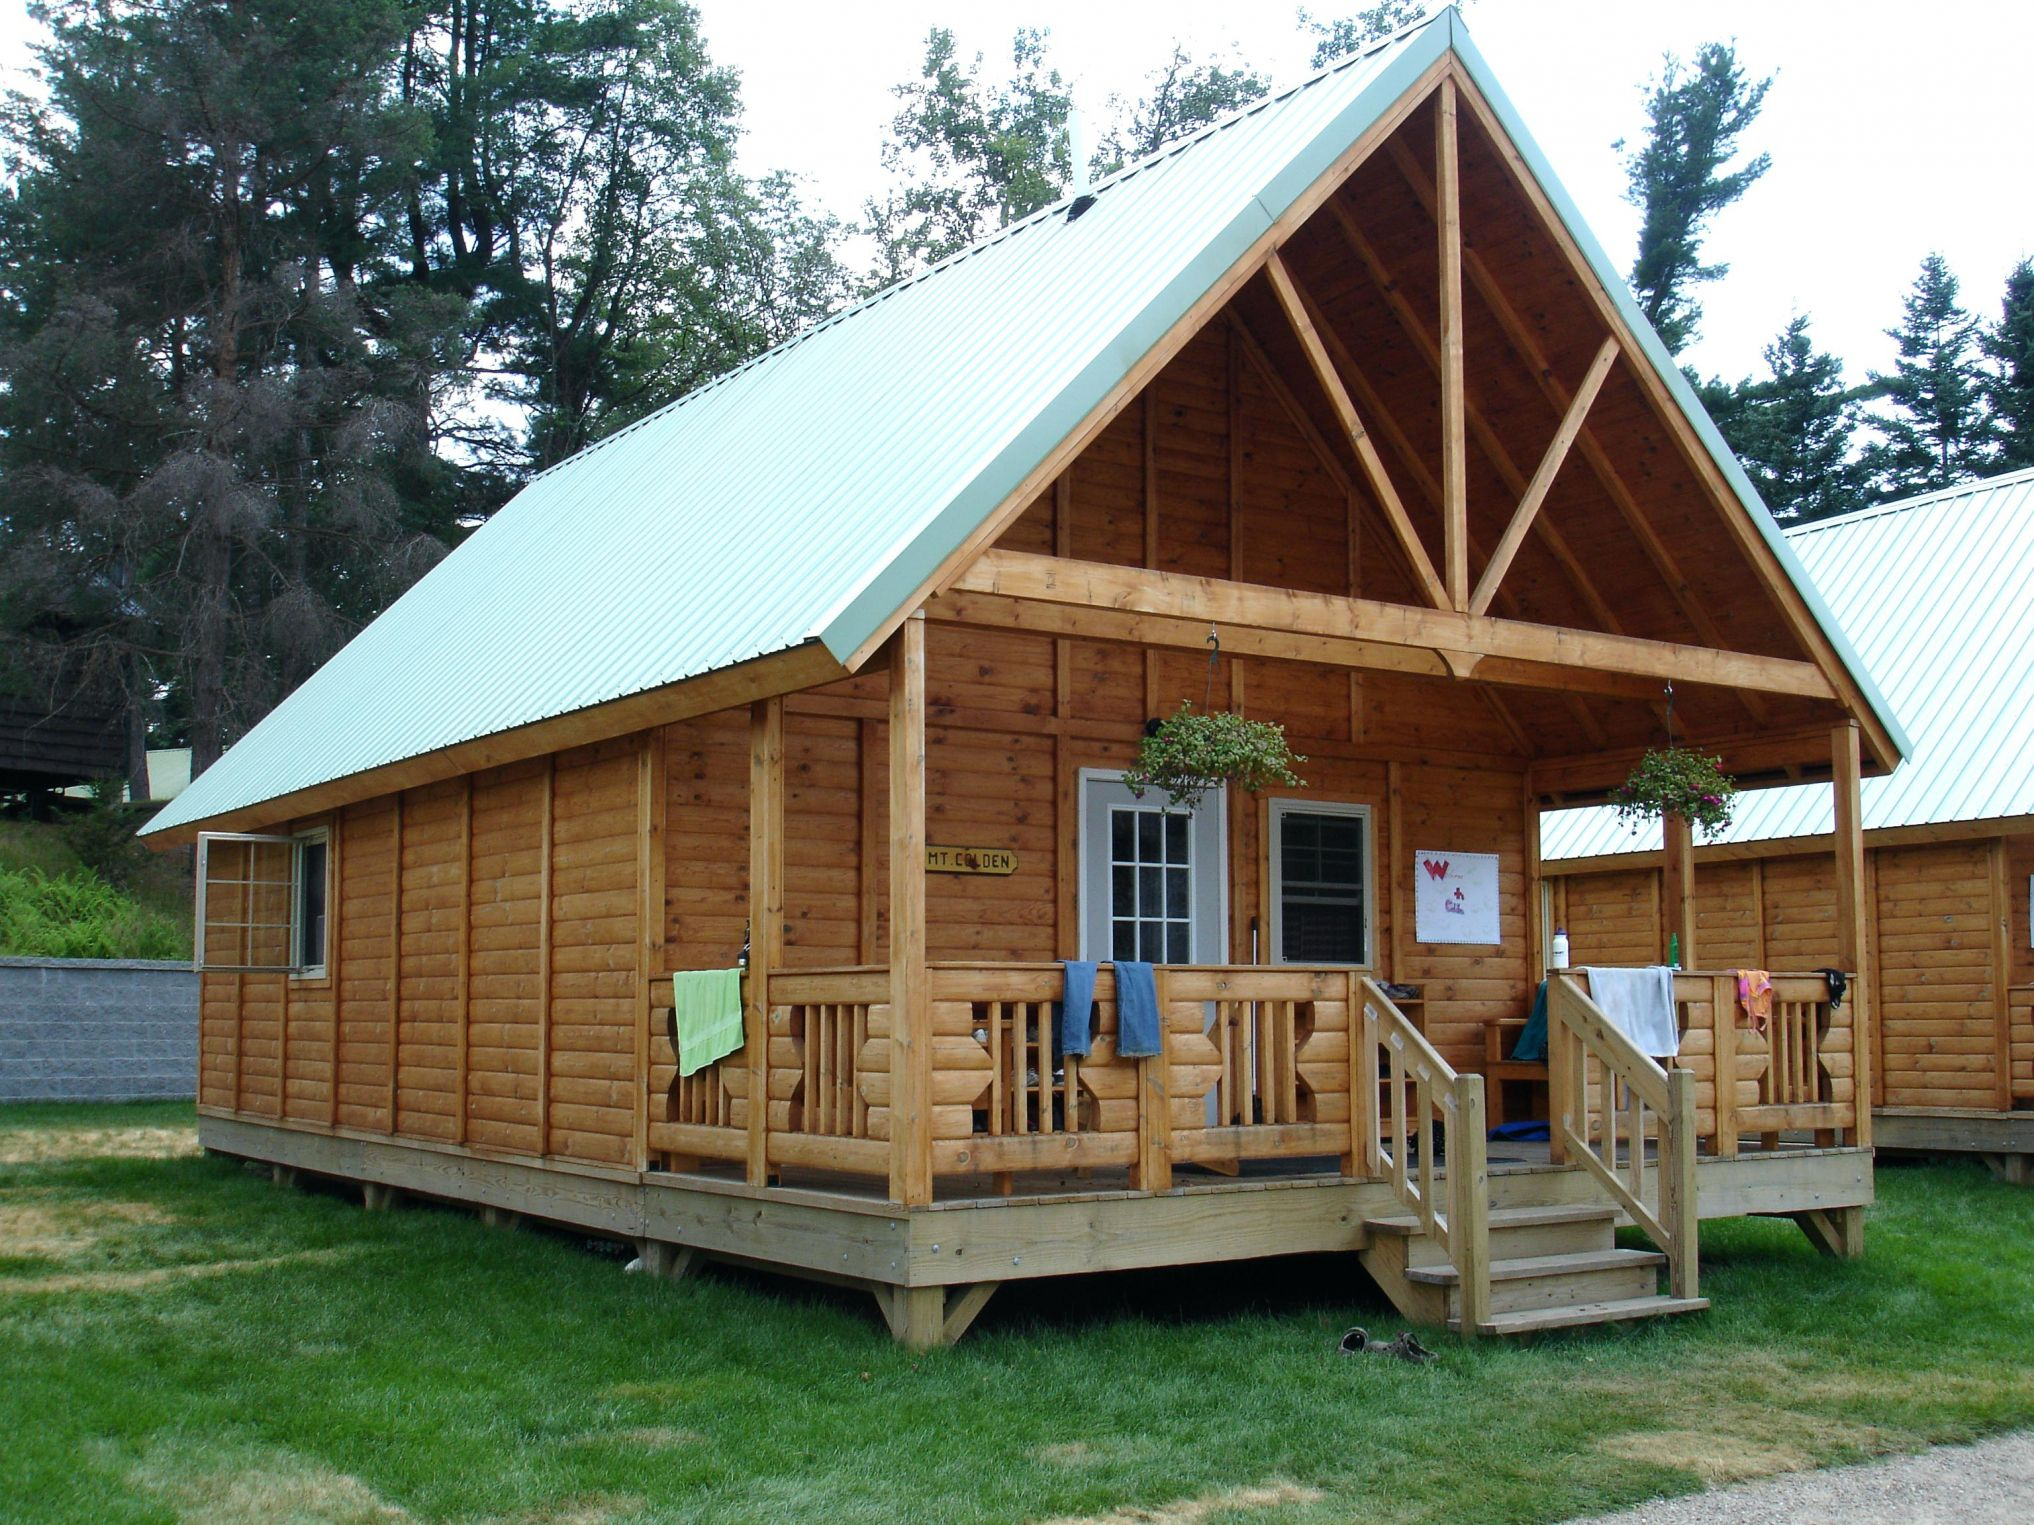 drobek houses price small cabins prefab california info wisconsin cheap sale s in for